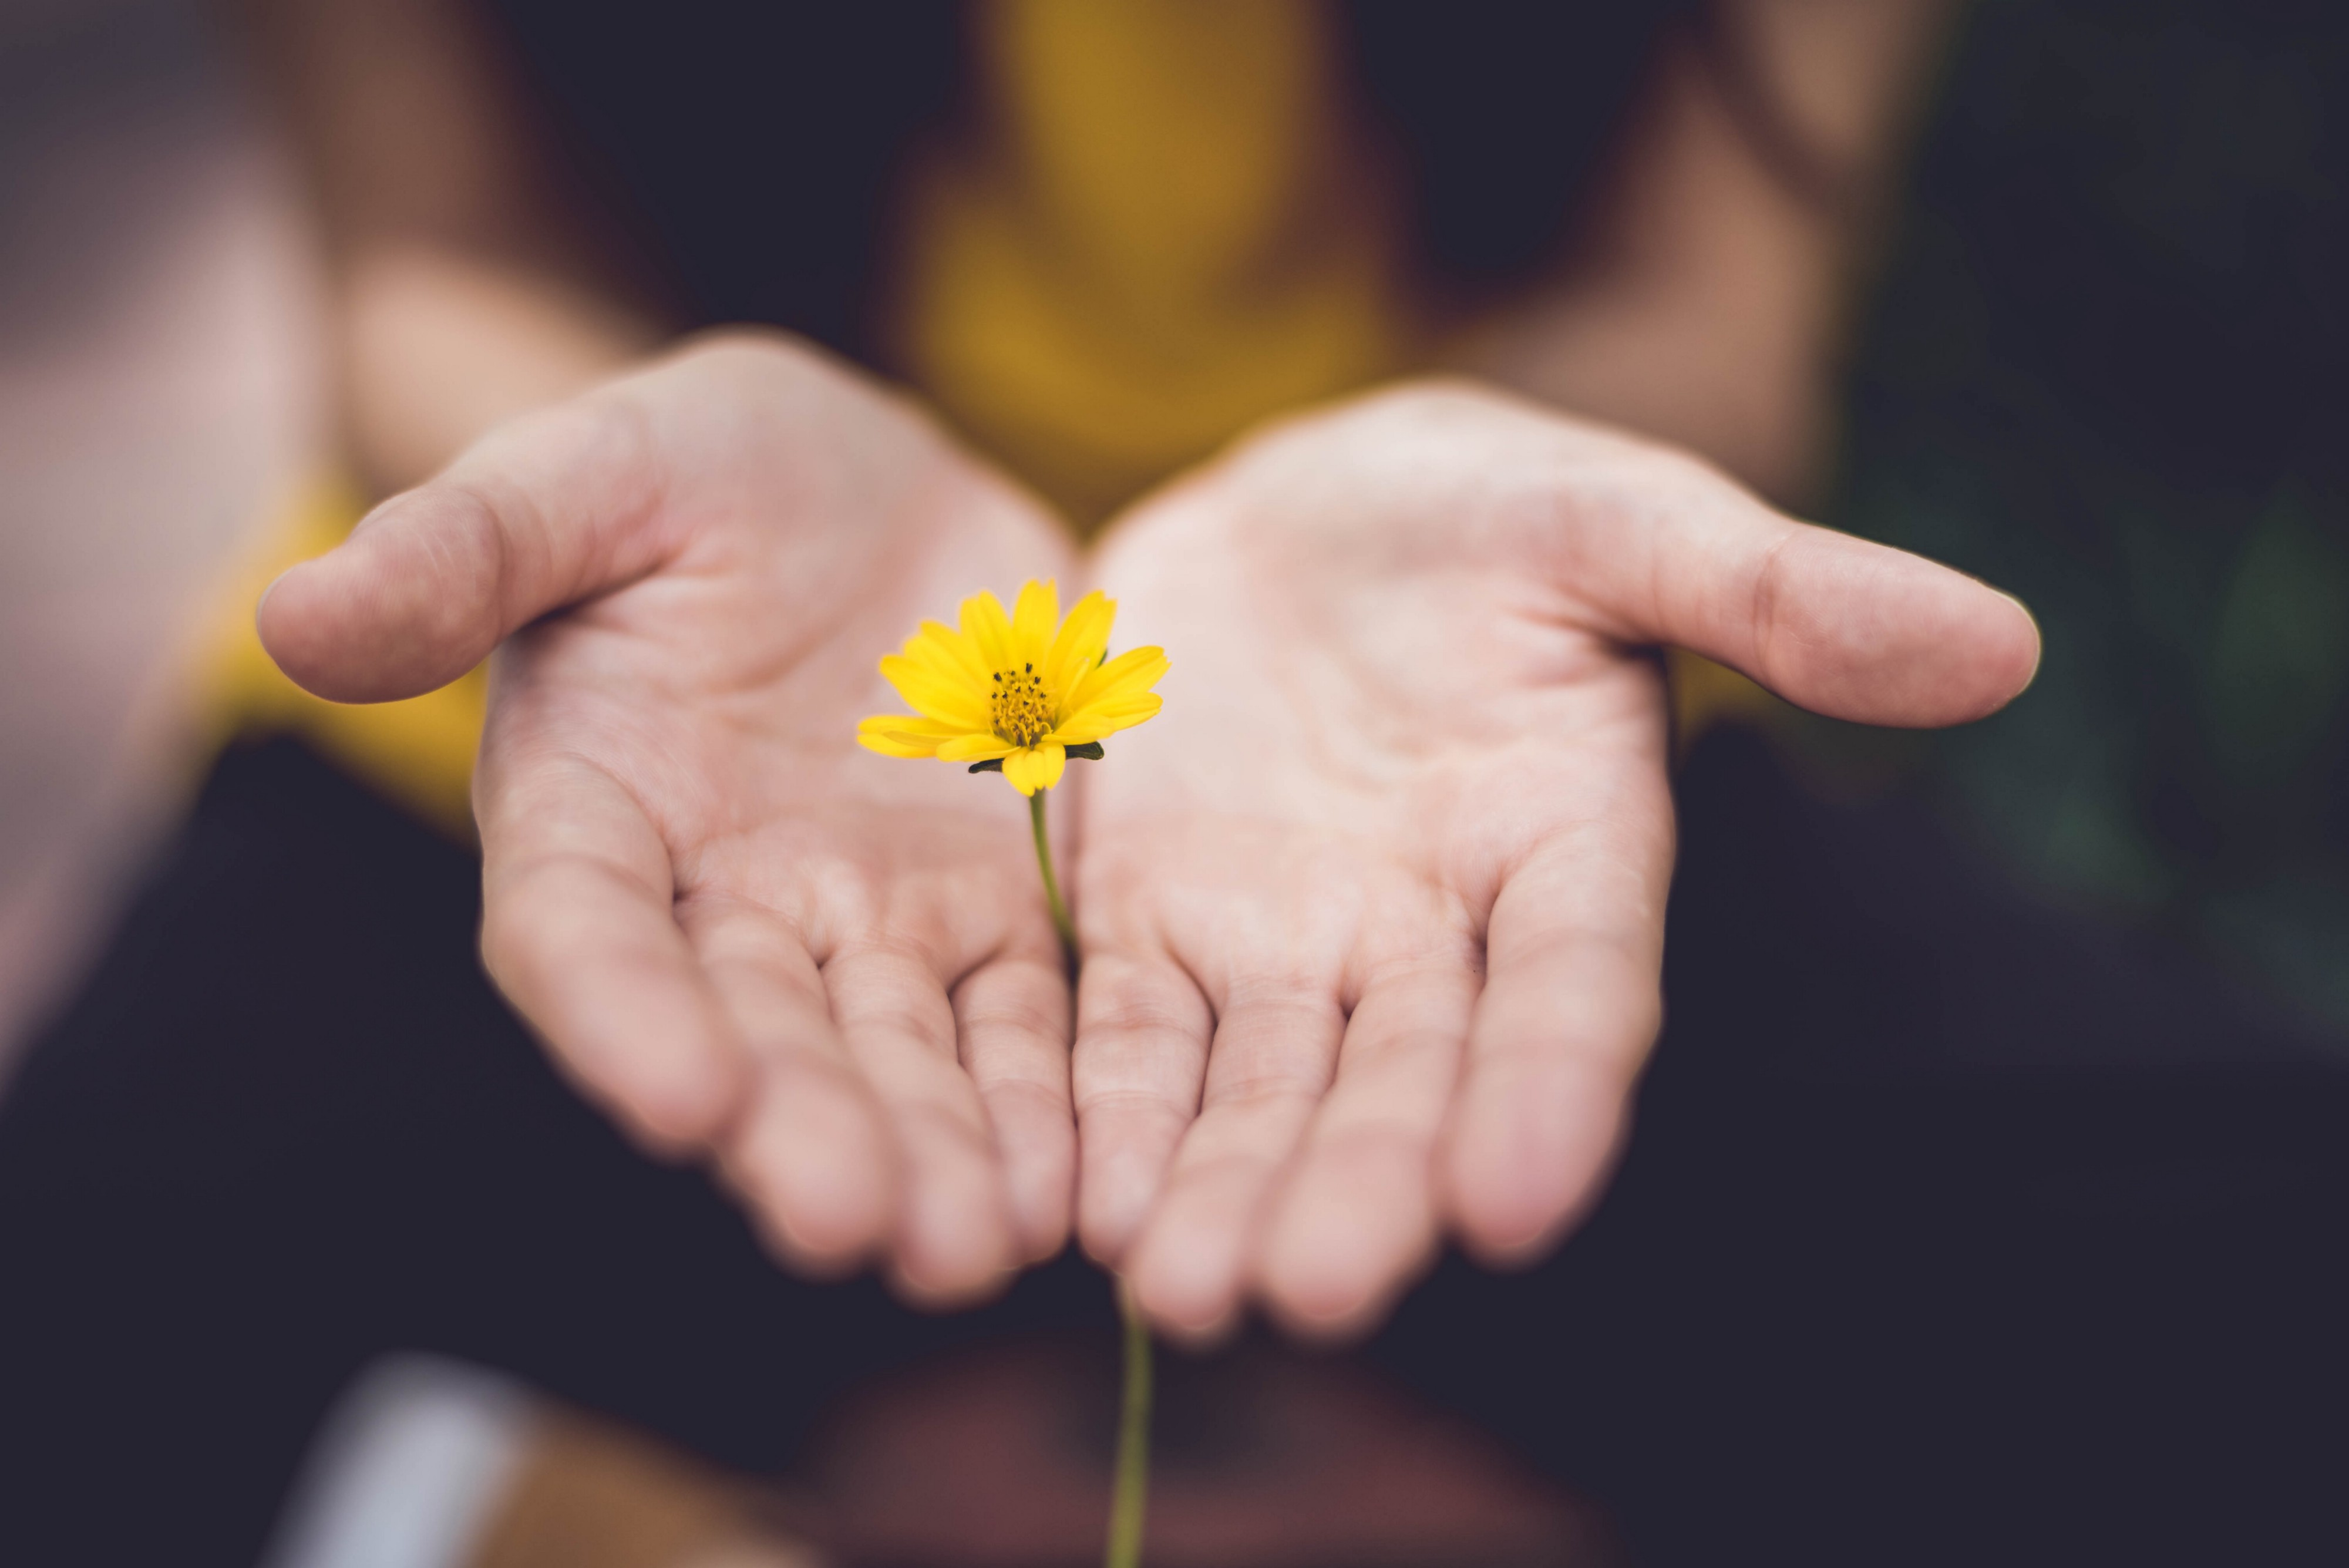 a flower in hands